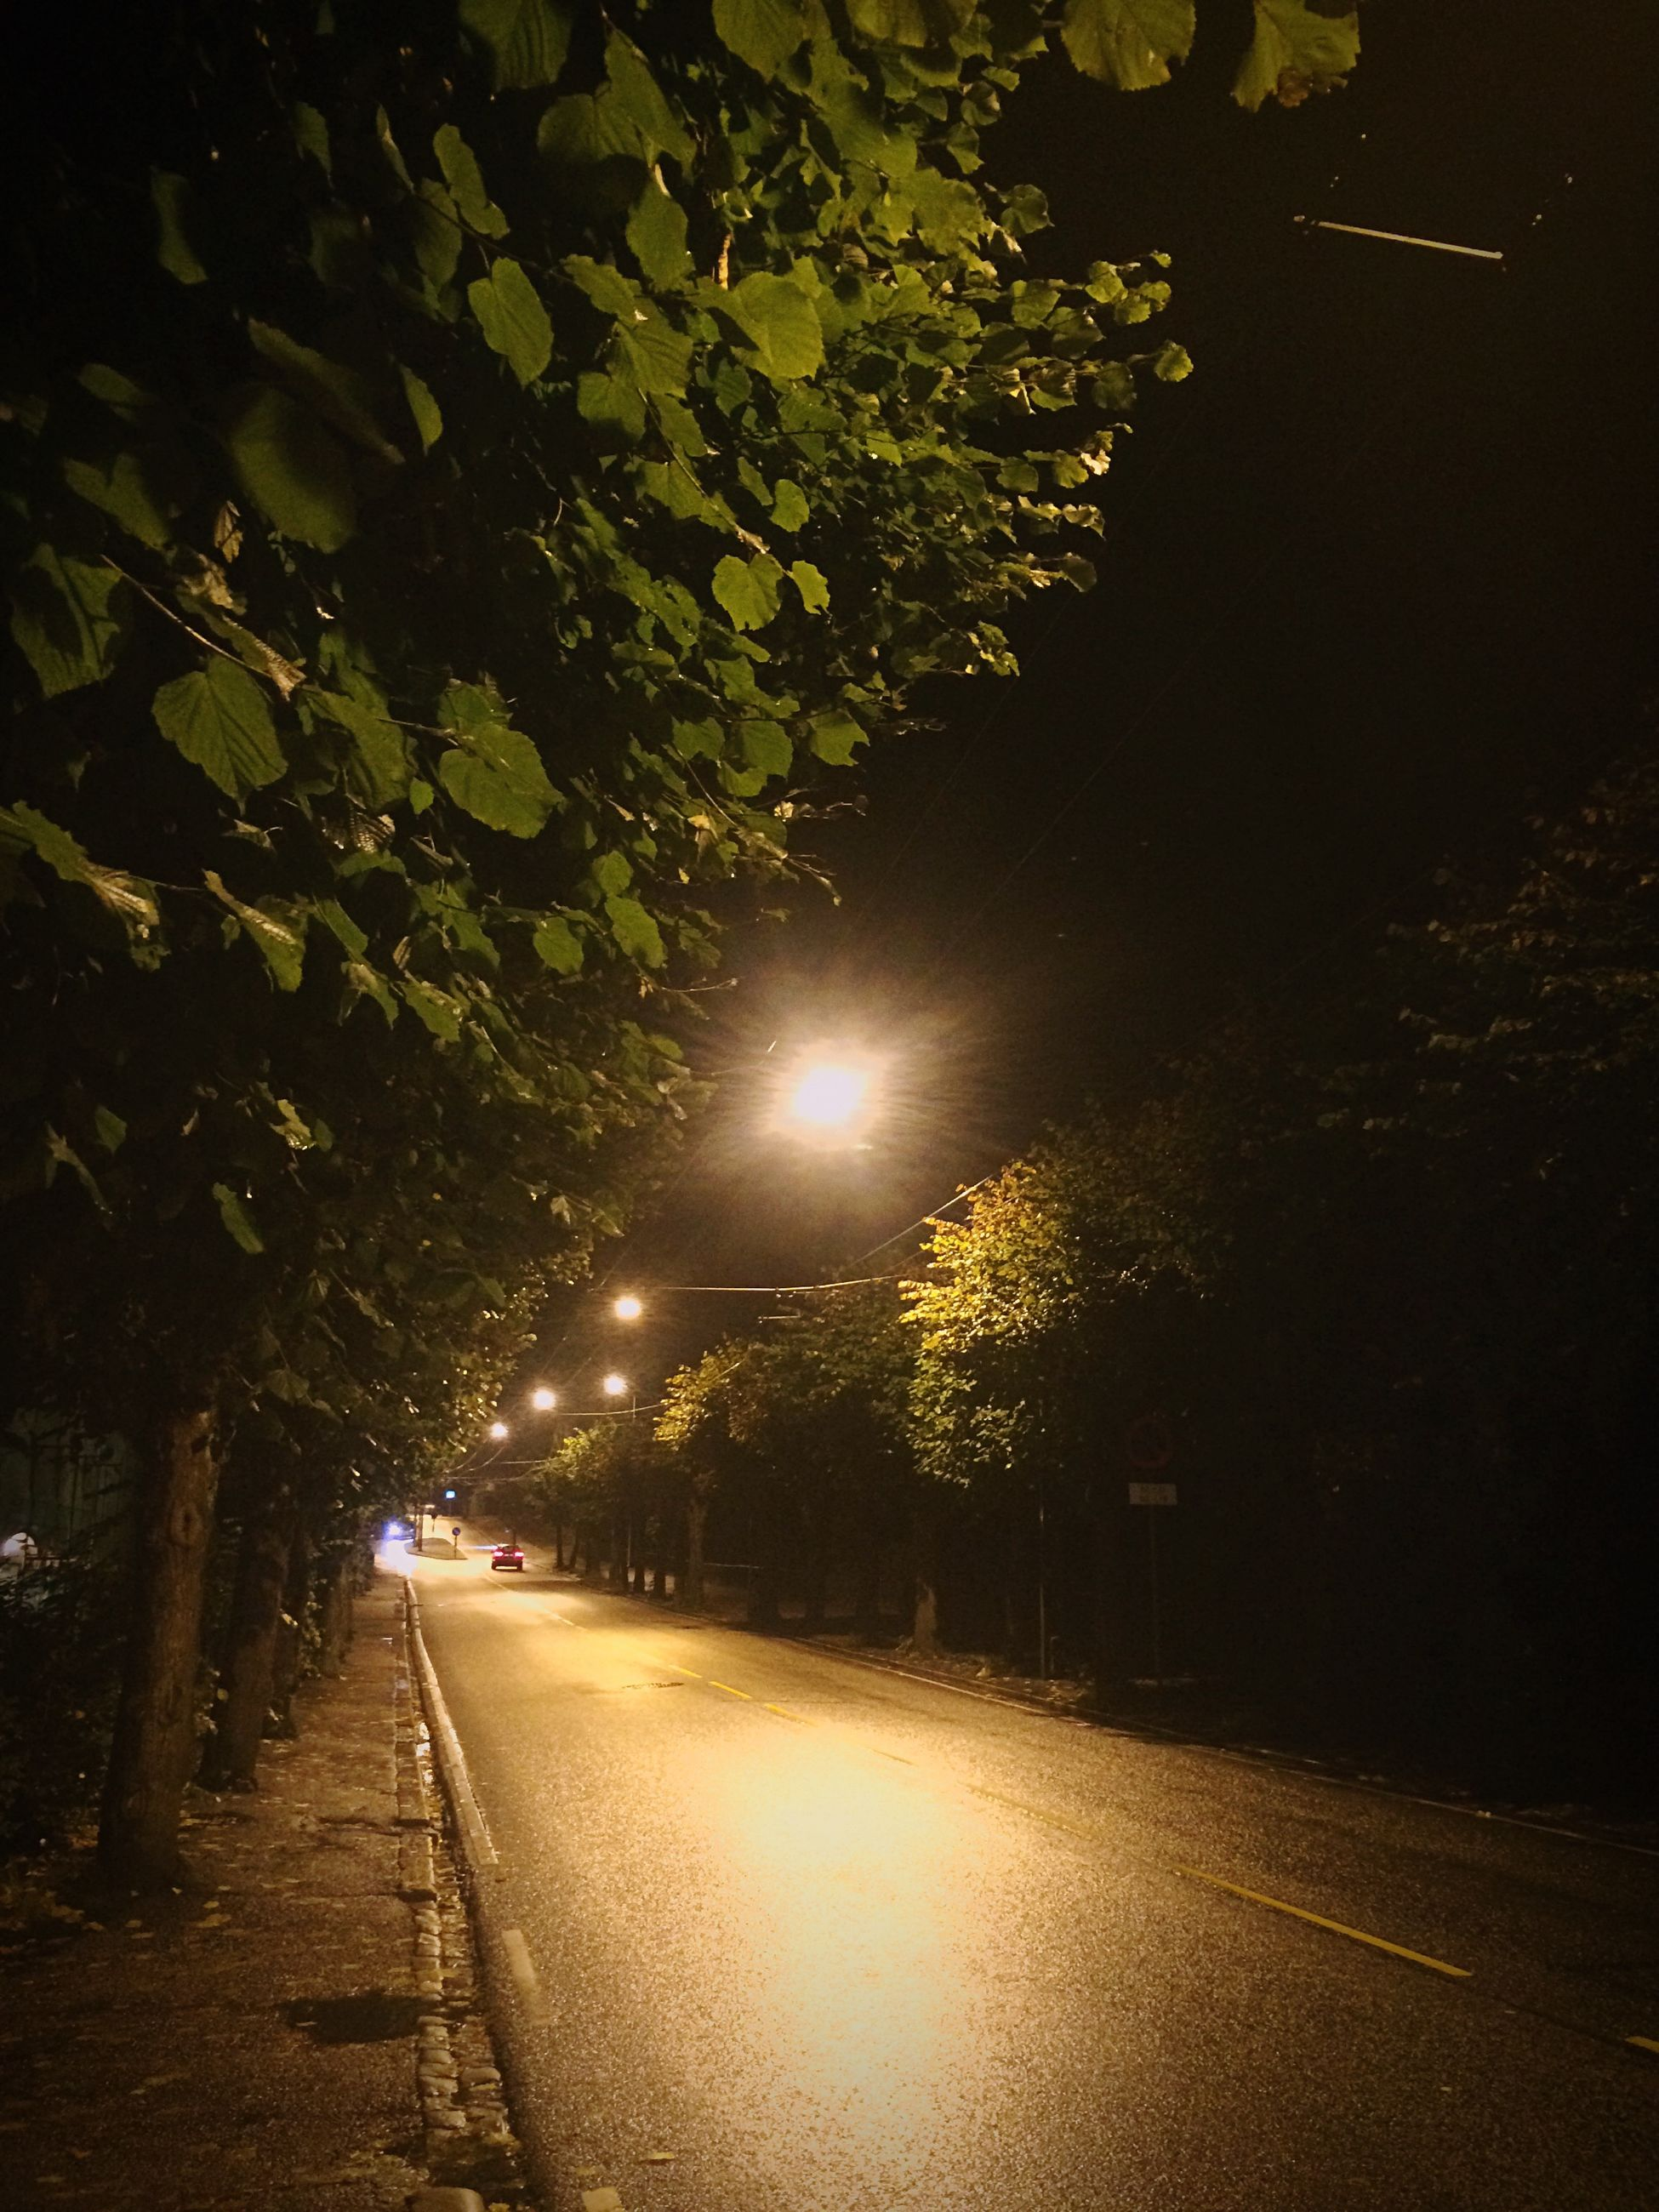 night, illuminated, street light, the way forward, tree, lighting equipment, street, growth, road, plant, footpath, light - natural phenomenon, empty, nature, outdoors, no people, dark, tranquility, green color, empty road